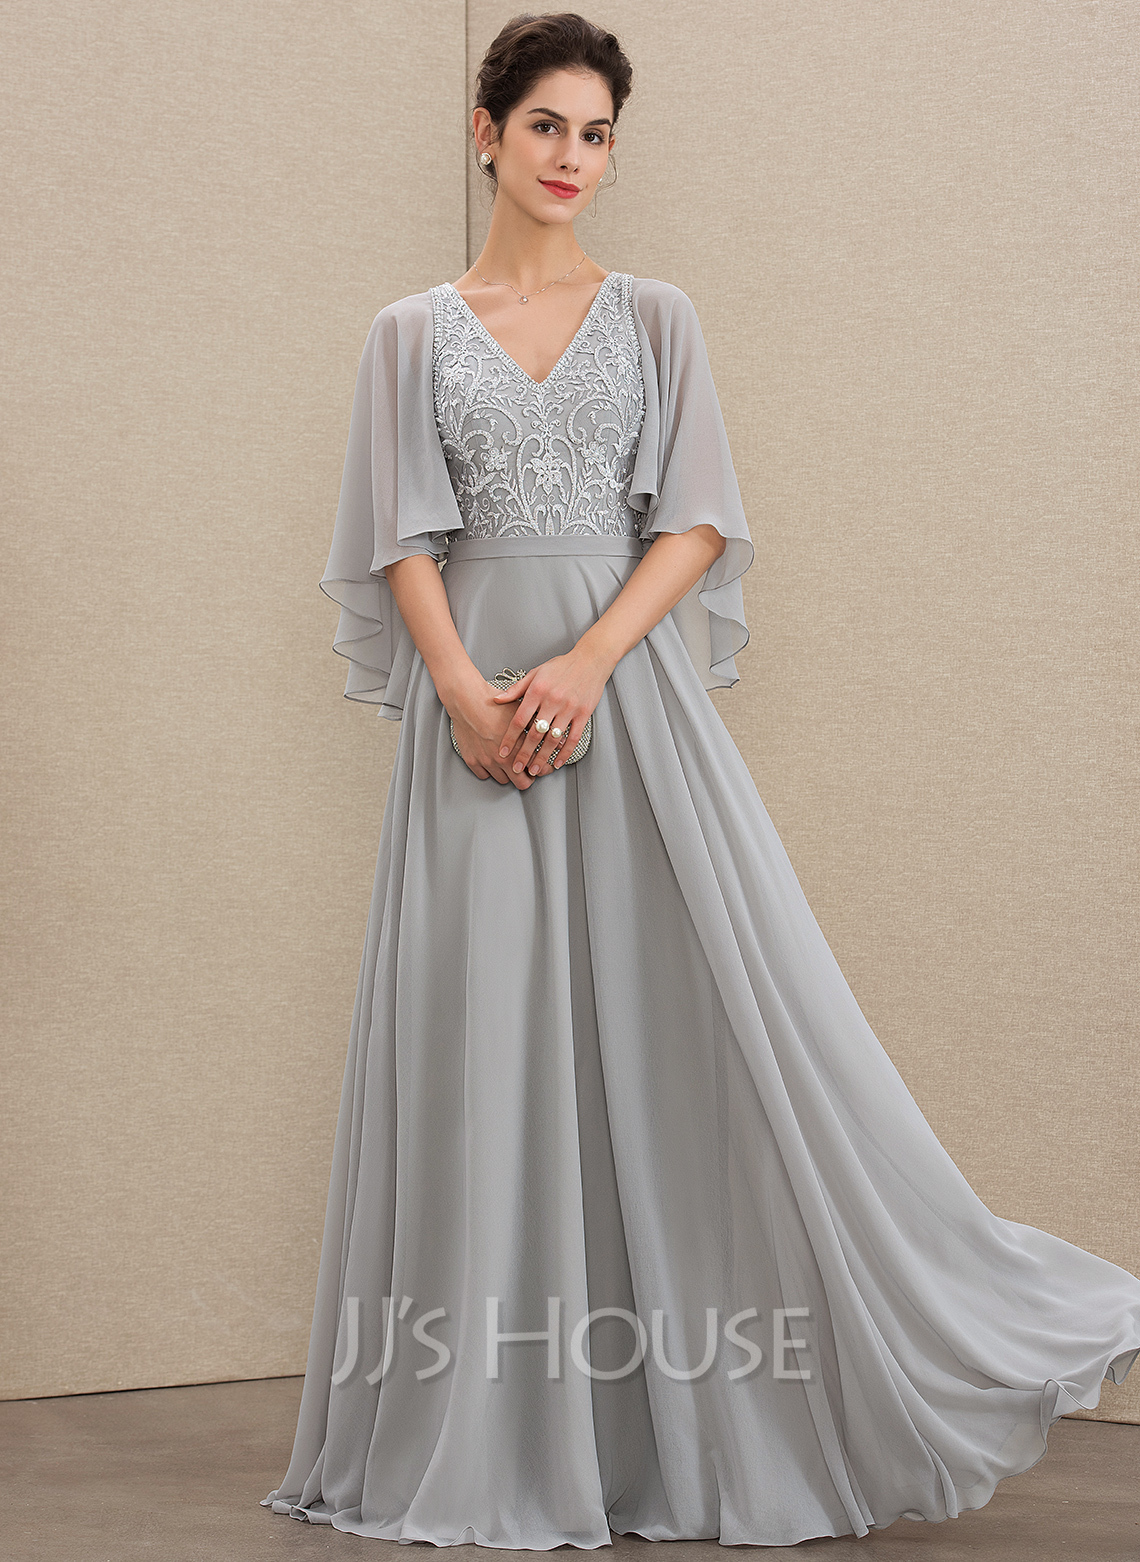 938e249bb A-Line V-neck Floor-Length Chiffon Lace Mother of the Bride Dress. Loading  zoom